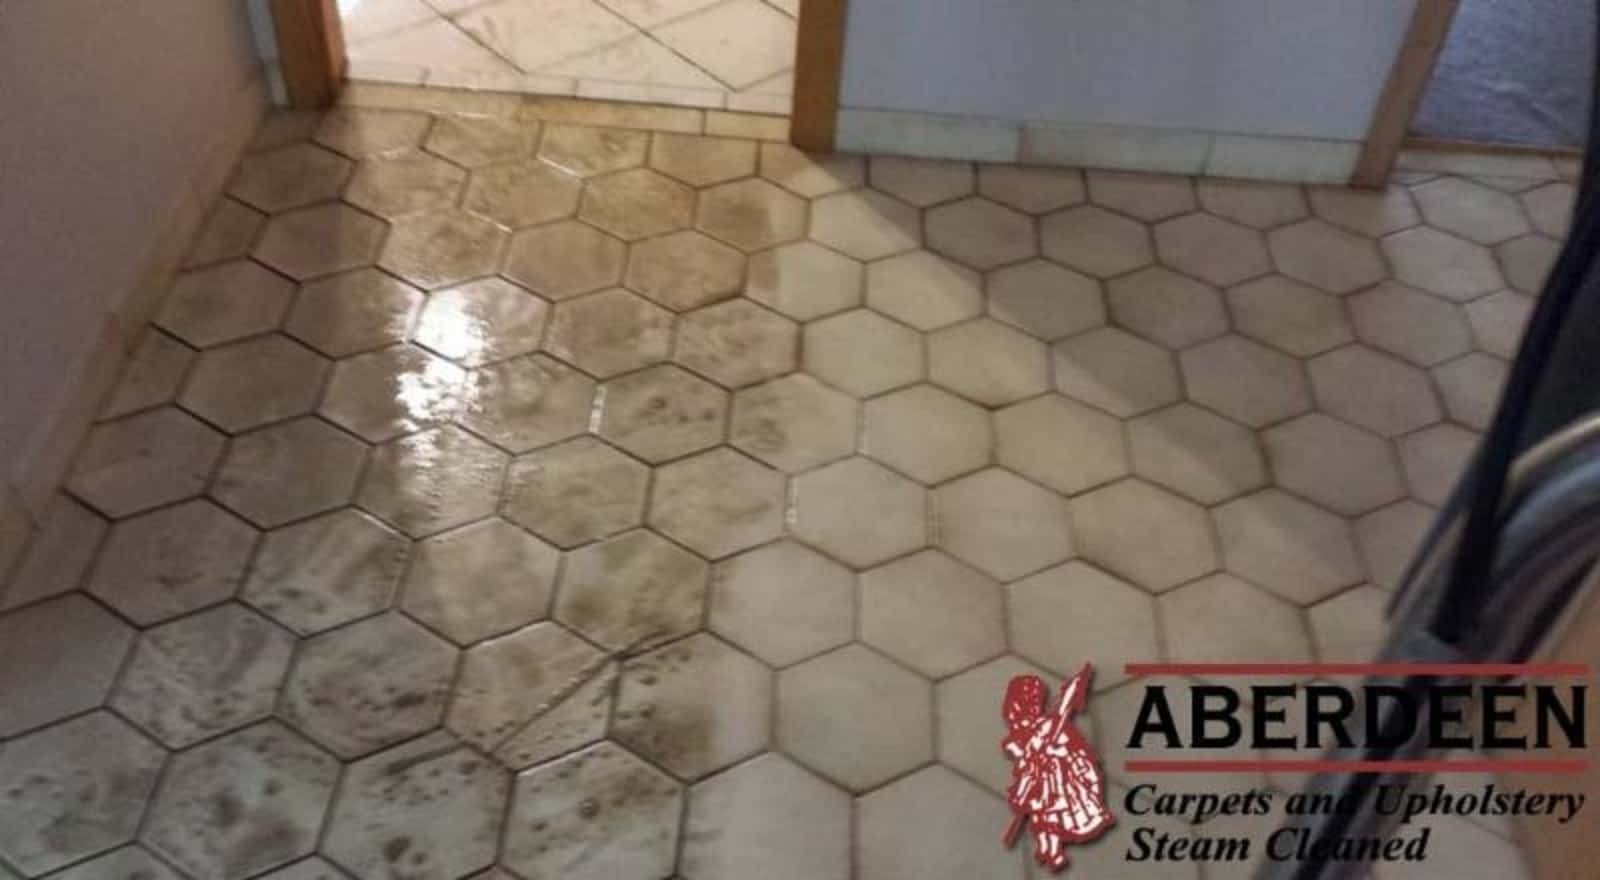 Aberdeen carpet upholstery cleaning opening hours 608 aberdeen carpet upholstery cleaning opening hours 608 mountain brow blvd hamilton on dailygadgetfo Images